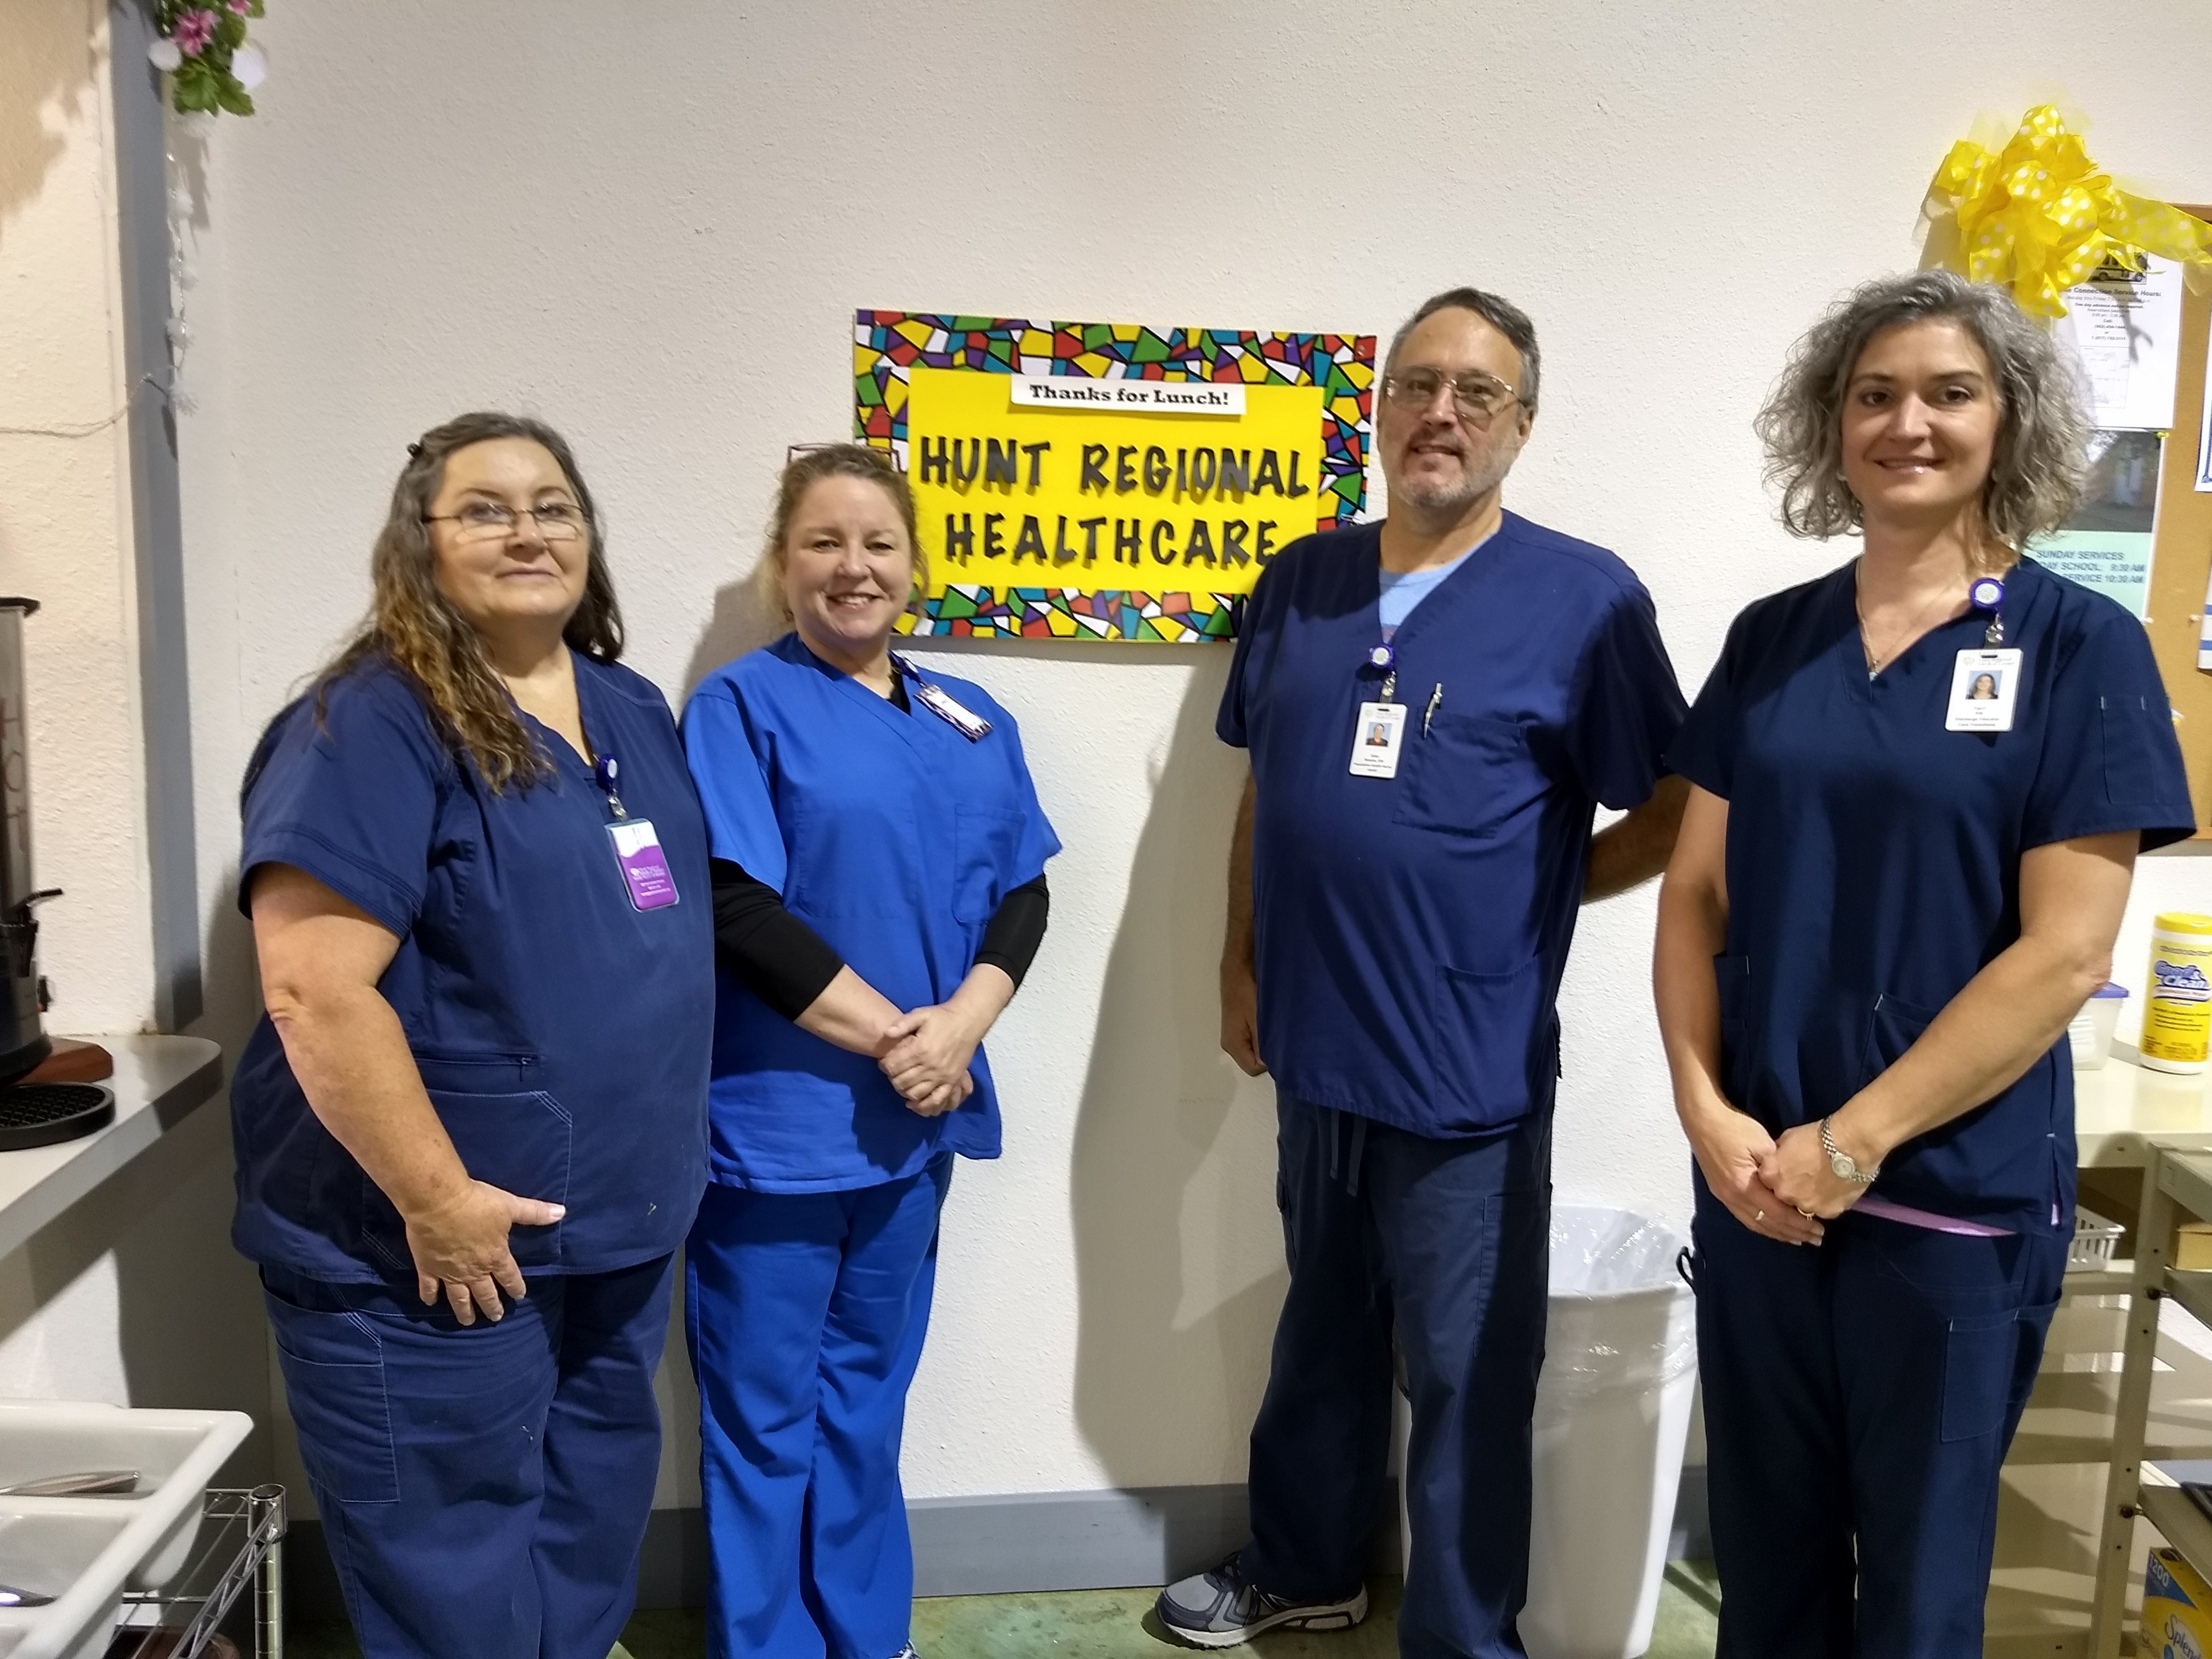 Thank you to Hunt Regional Healthcare sponsor for the meal during the month of July!